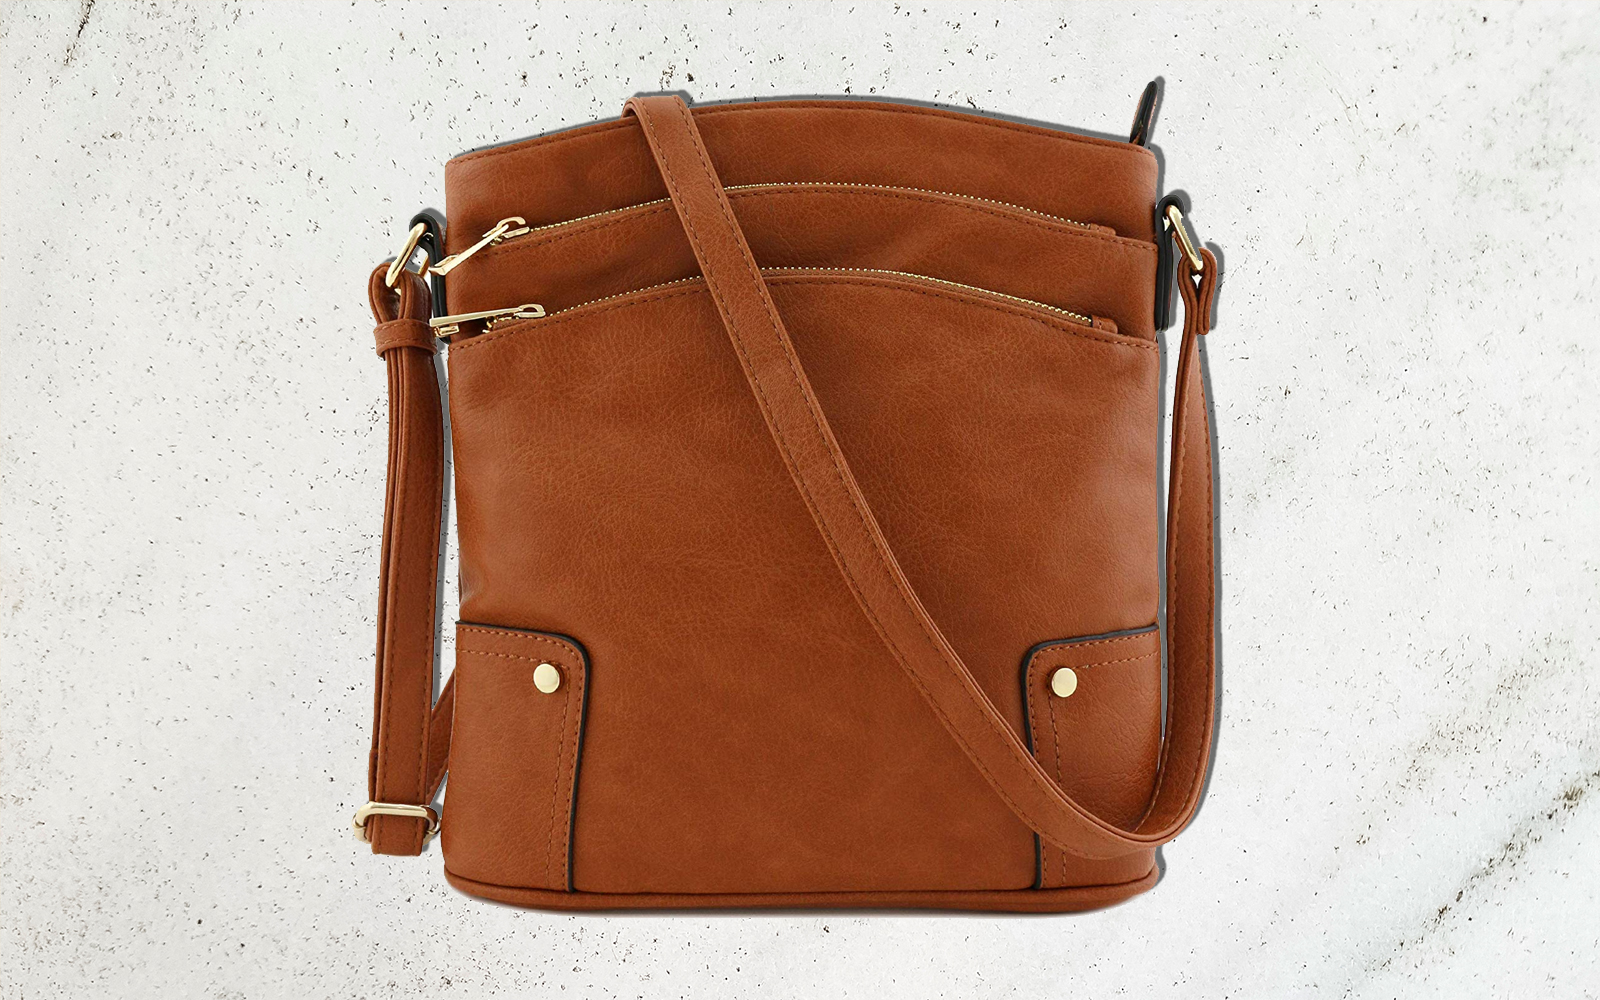 This $24 Cross-body Is the Key to Keeping Your Bag Organized — and It Has 1,200 Reviews to Prove It